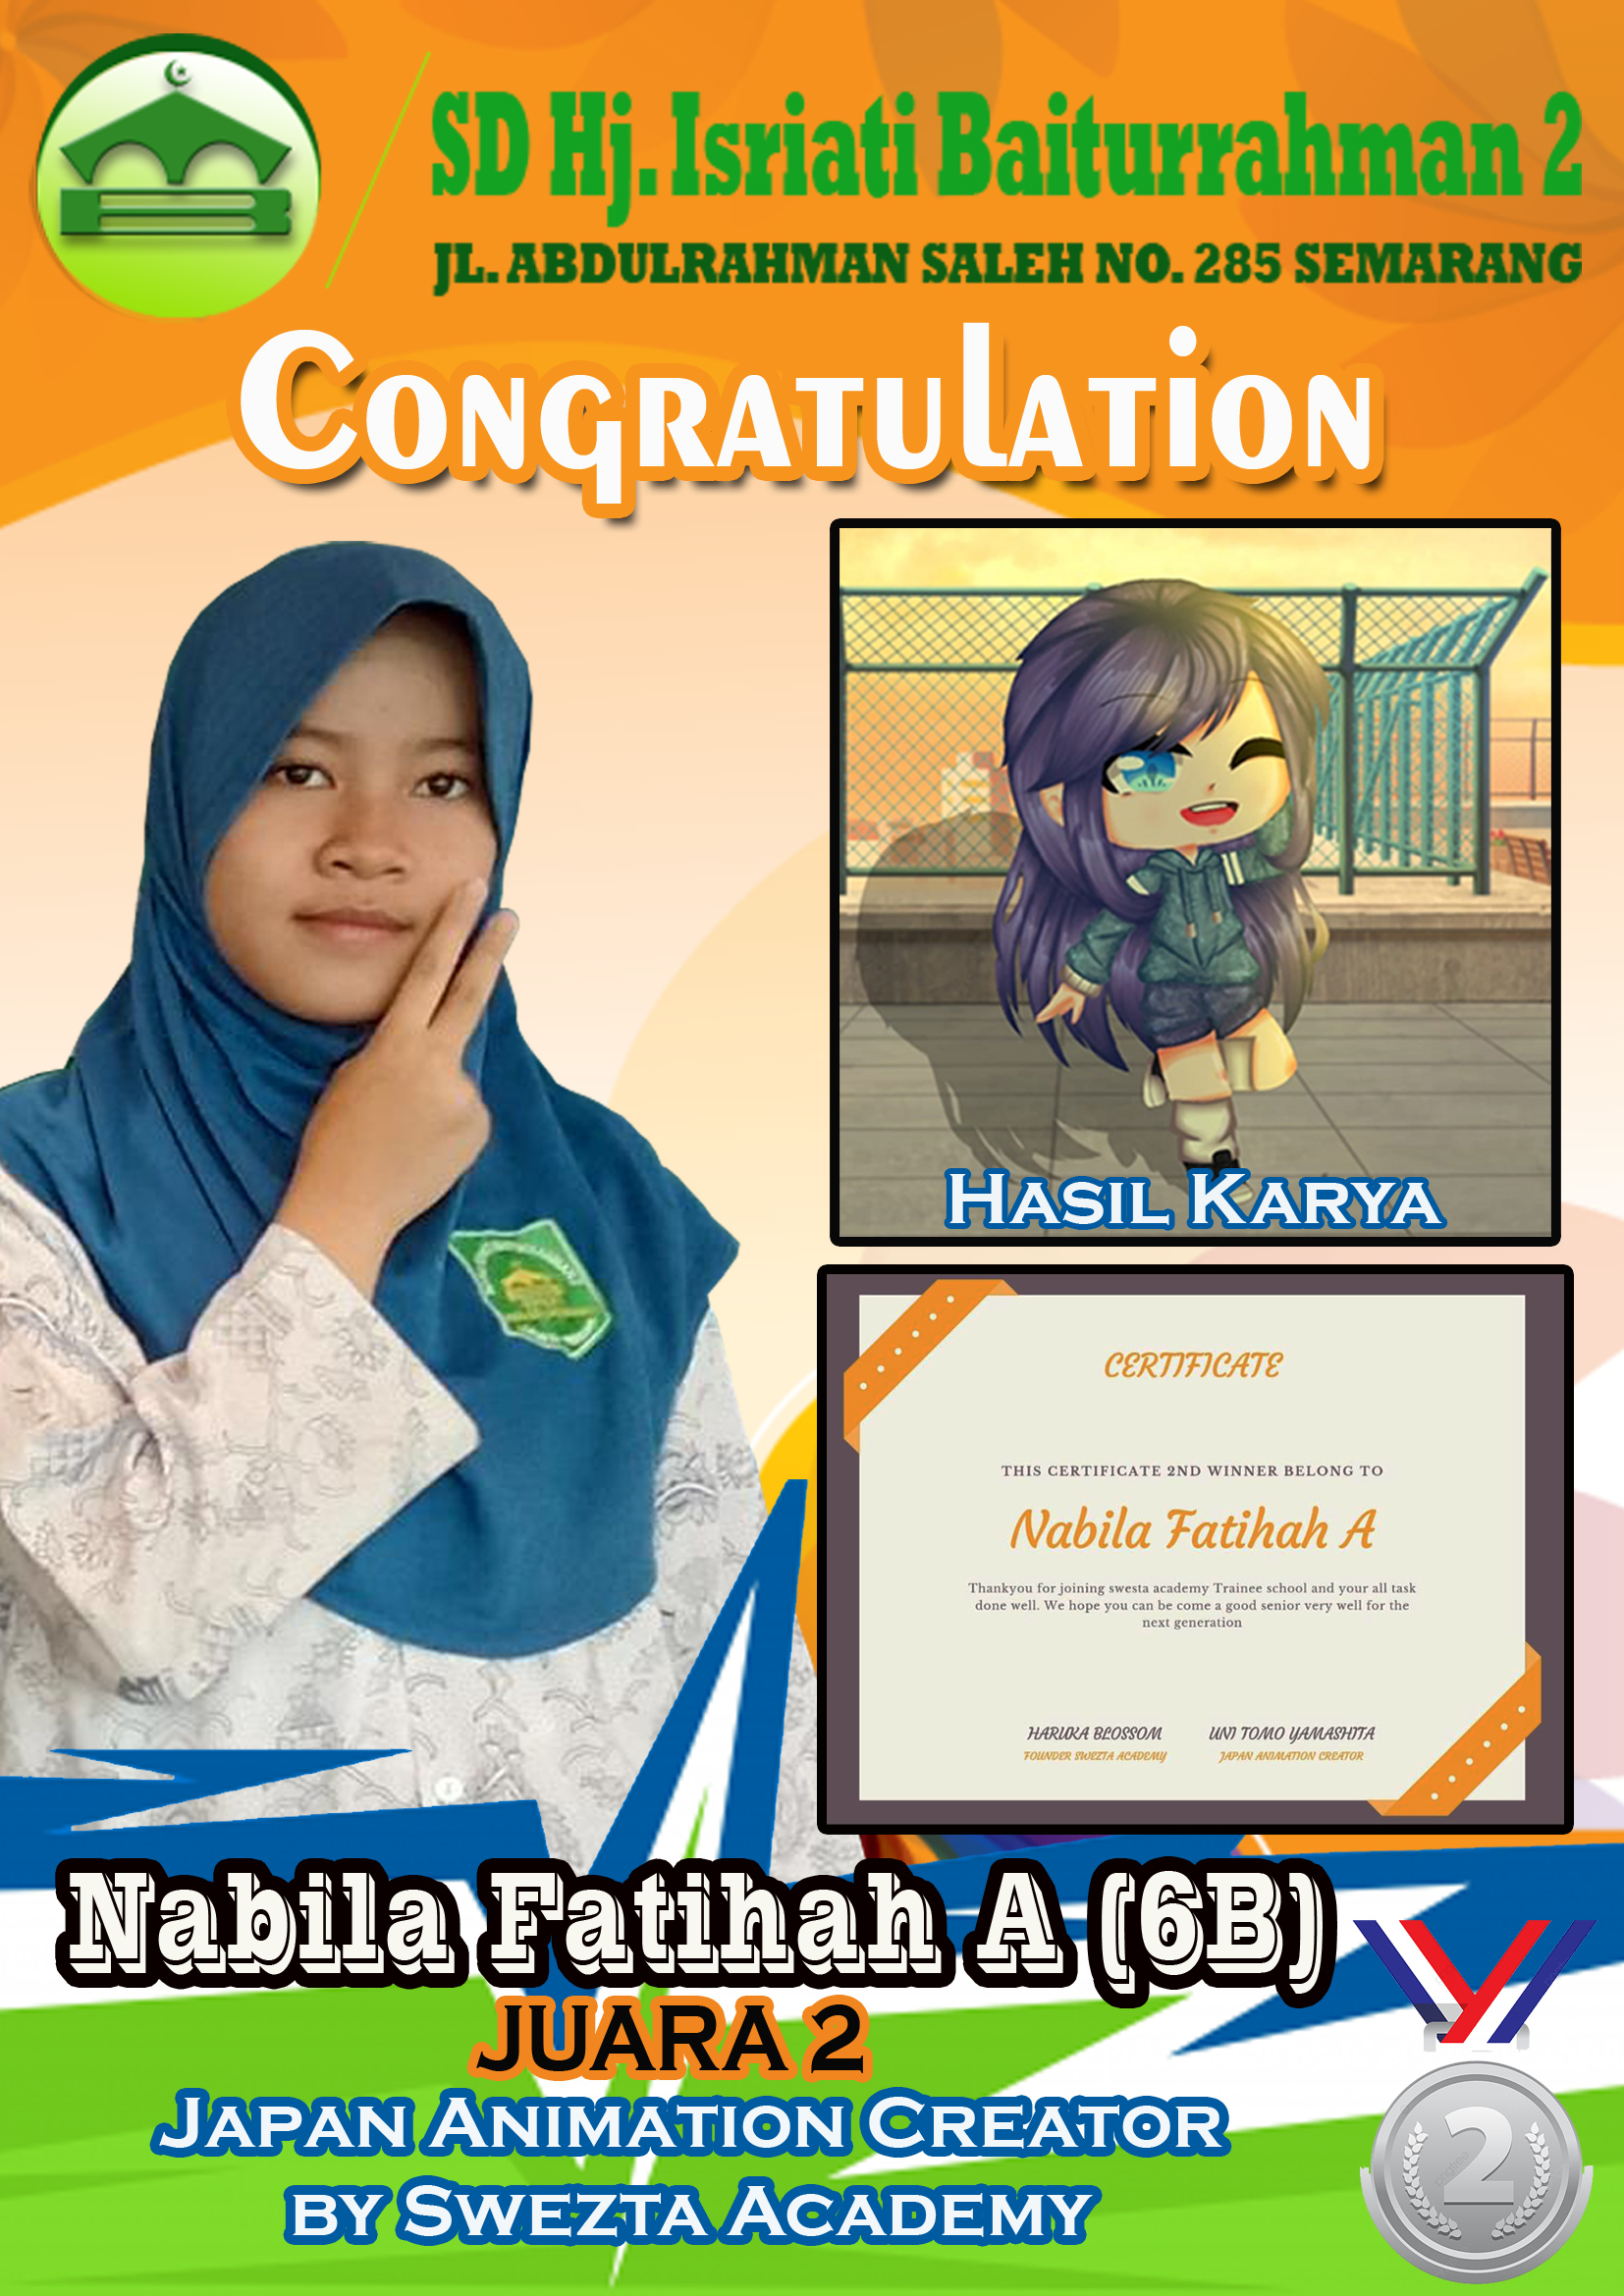 Juara 2 Japan Animation Creator